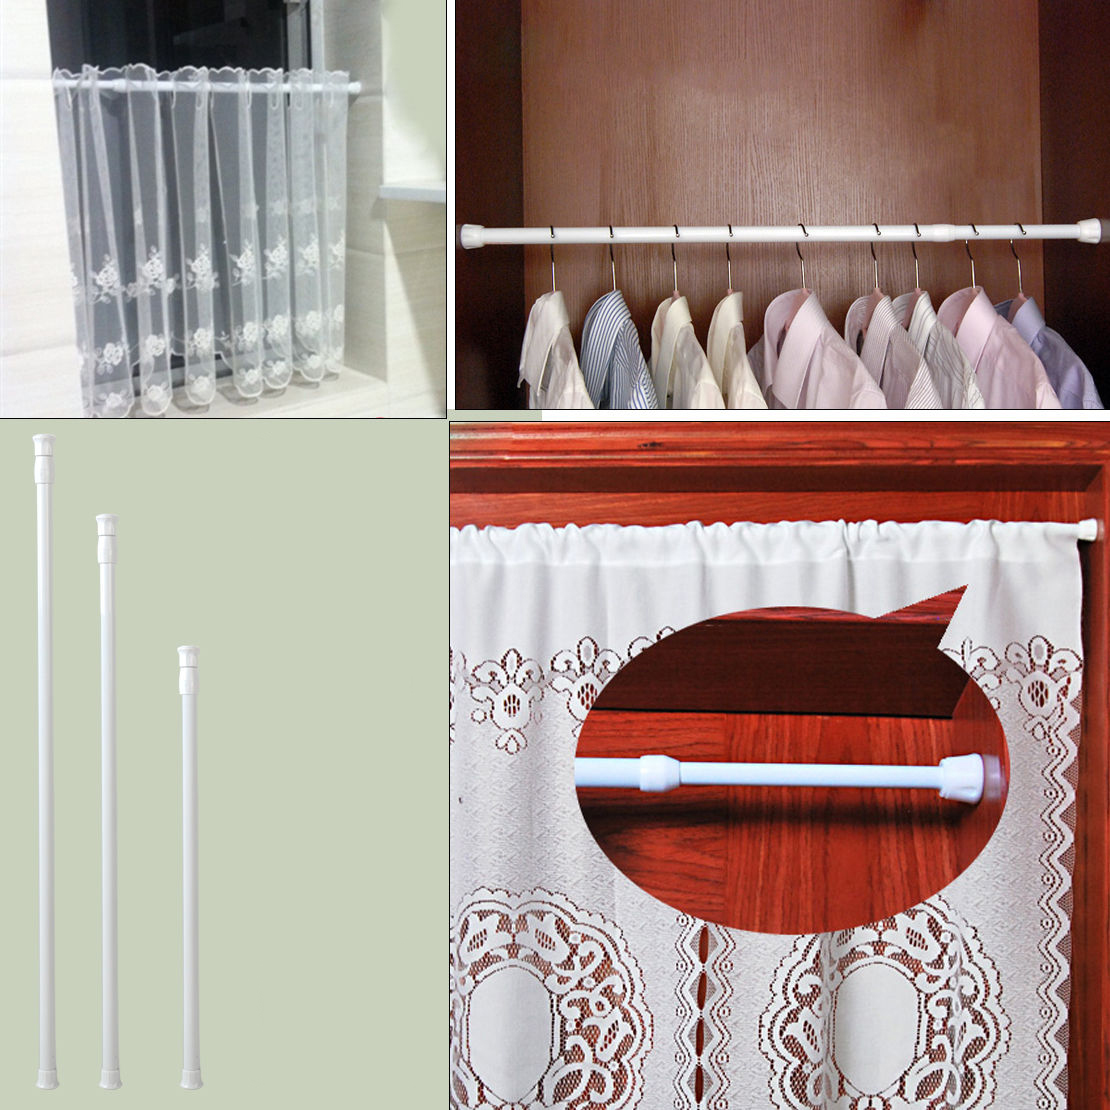 High Carbon Steel Adjustable Rod Tension Bathroom Curtain Extensible Rod Hanger P0.2